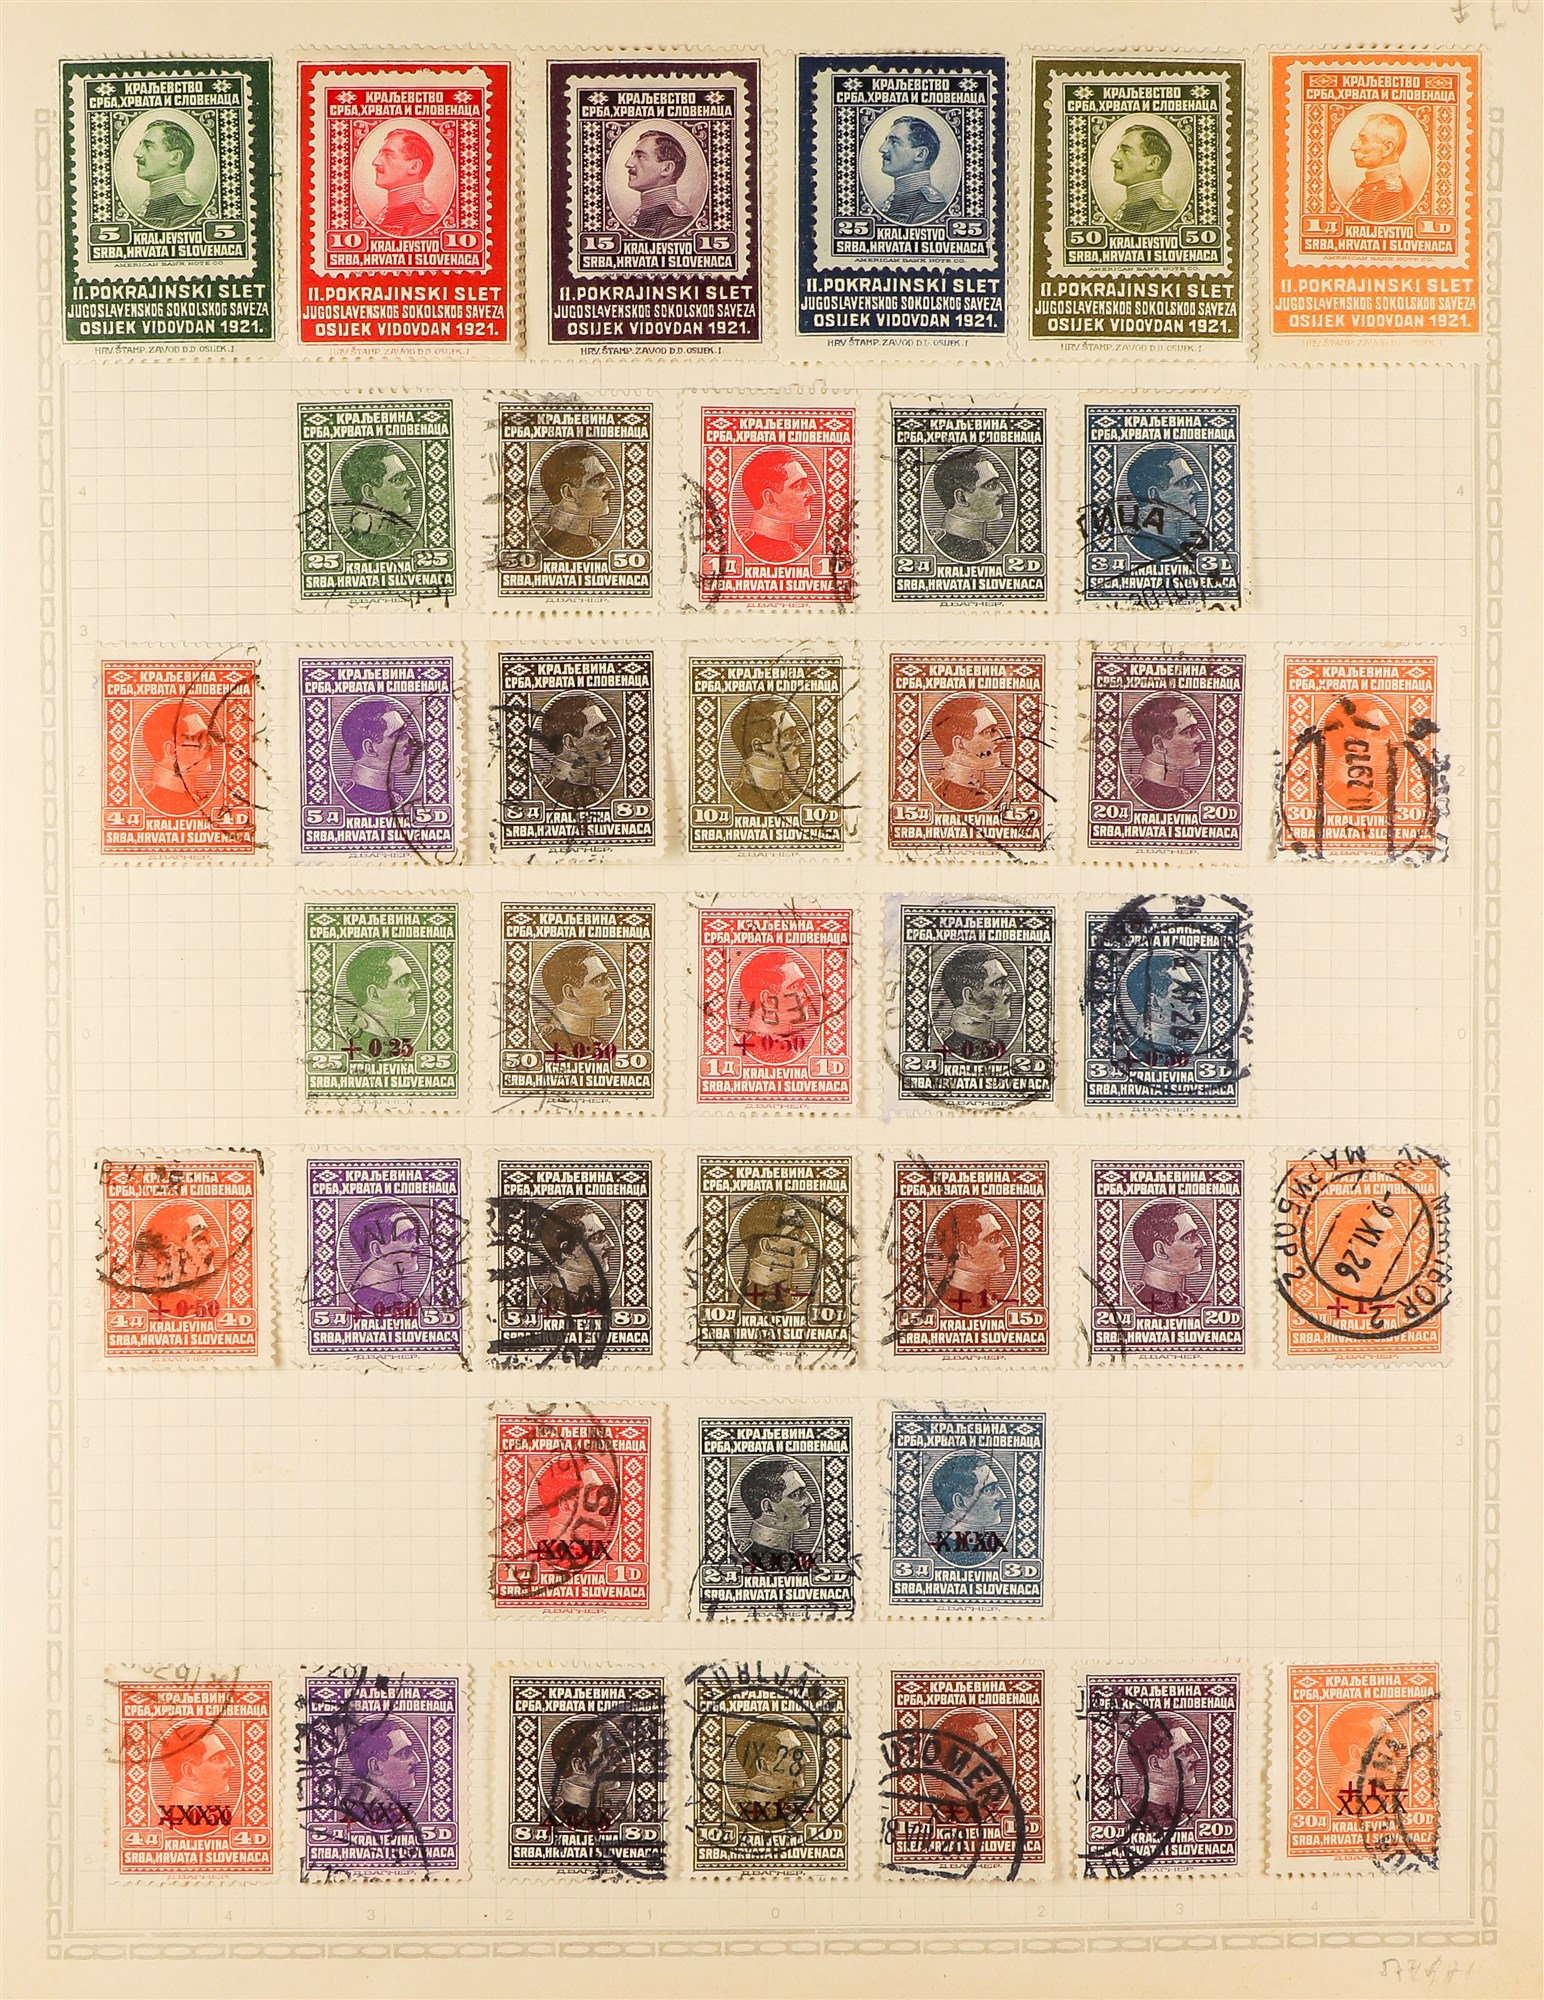 YUGOSLAVIA 1919-80 COLLECTION of mint and used issues in an album, incl. extensive Chainbreakers, - Image 7 of 17